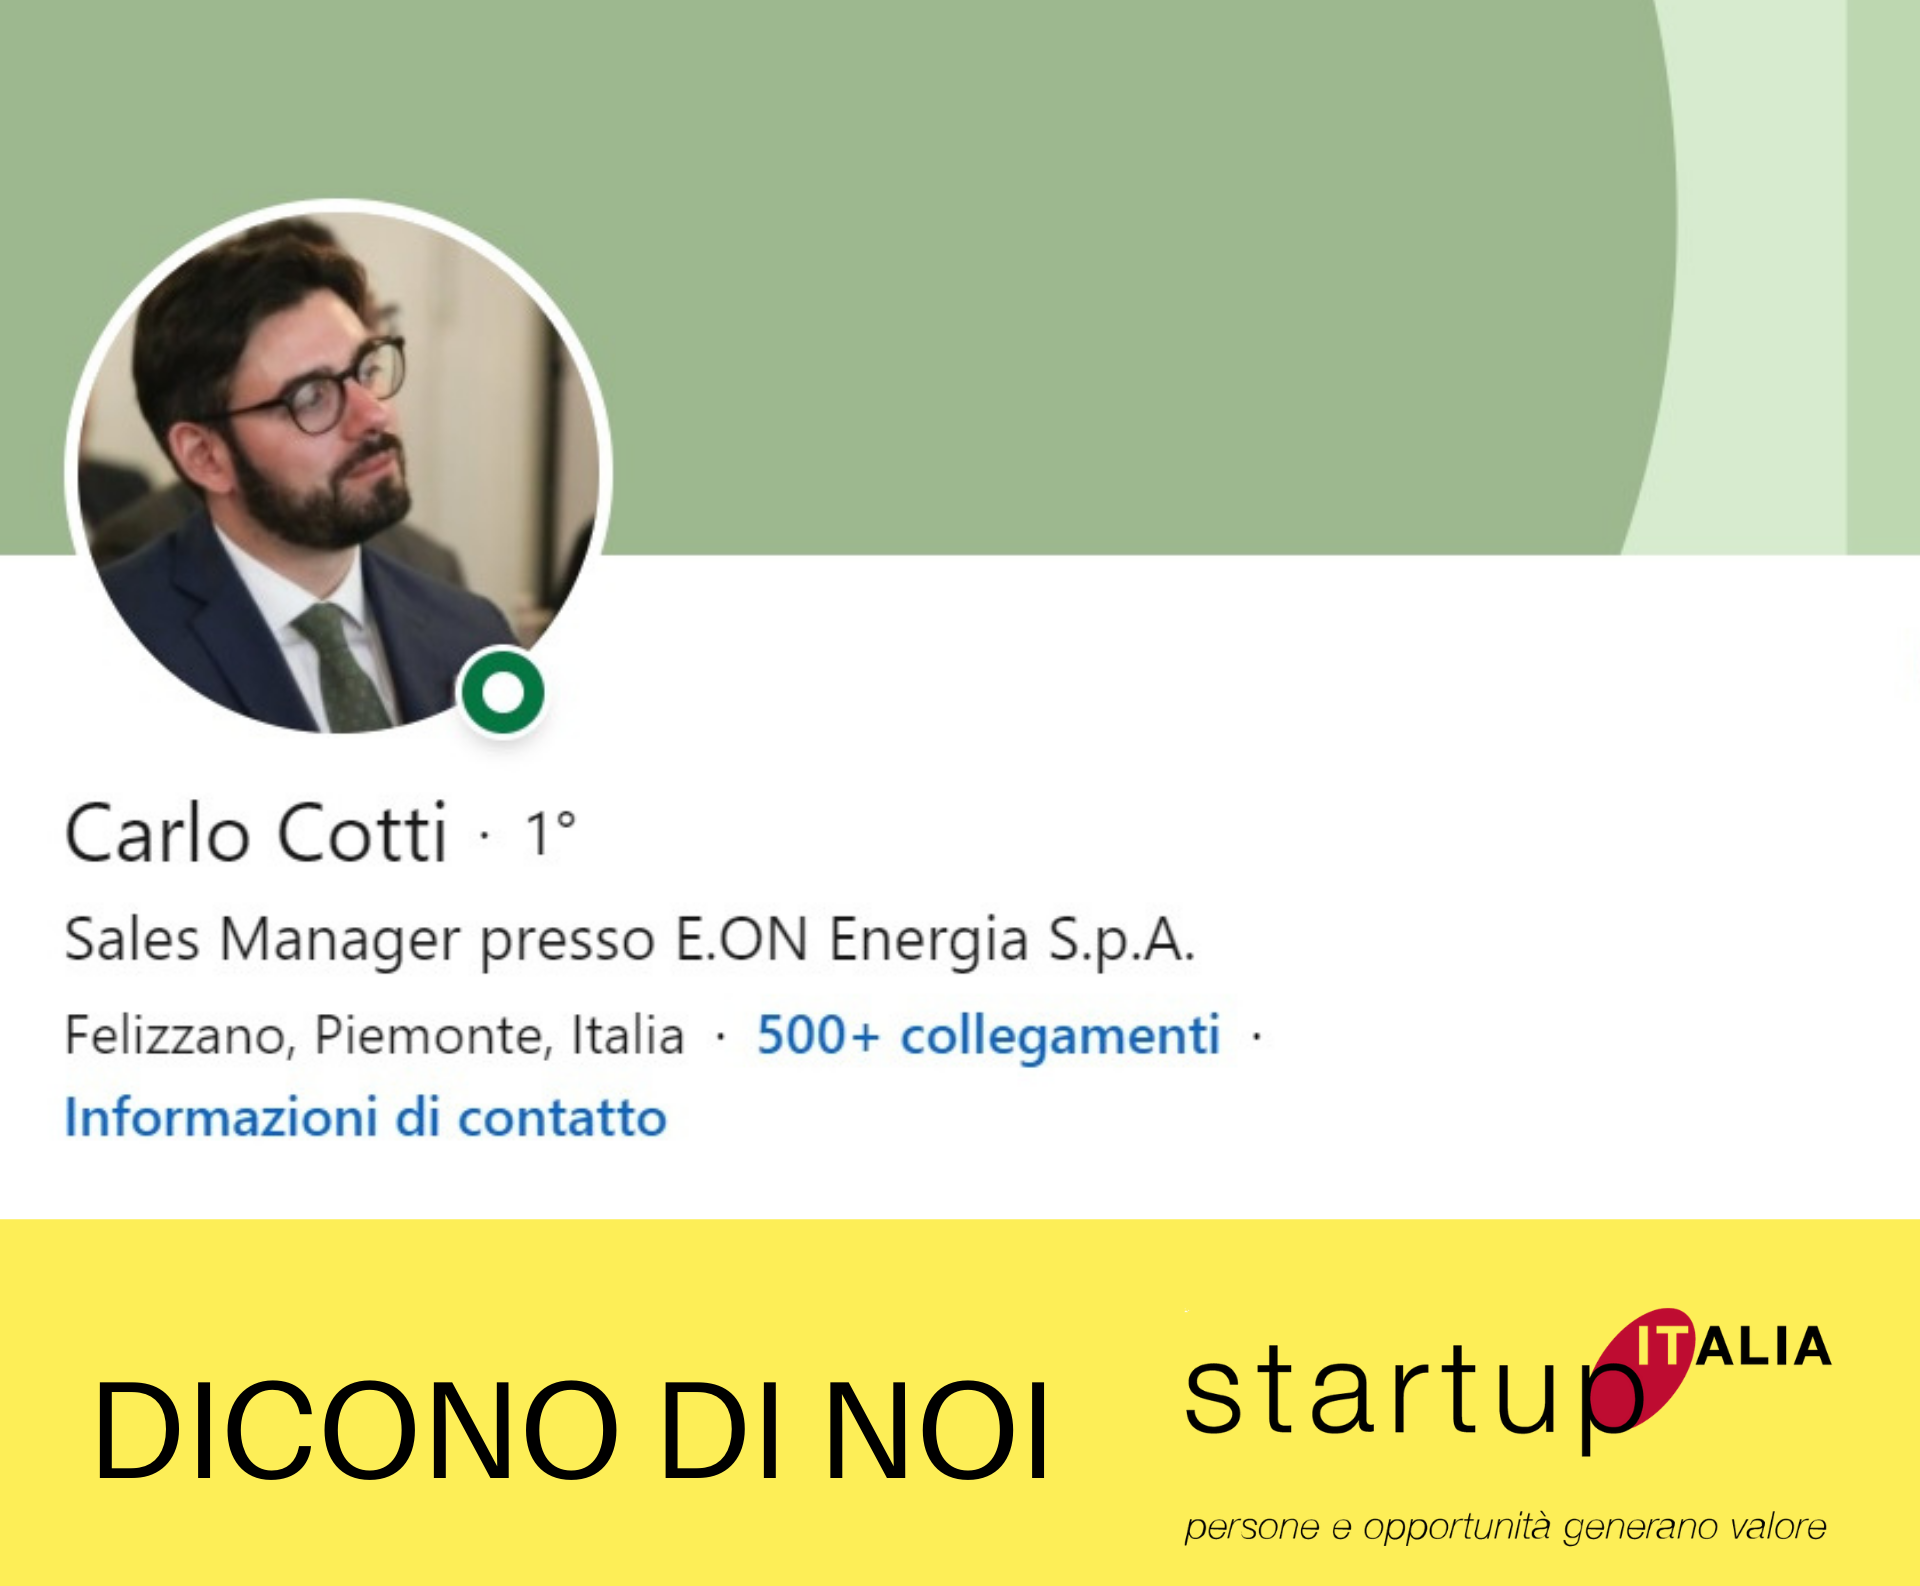 Carlo Cotti – District Manager per E.ON Energia